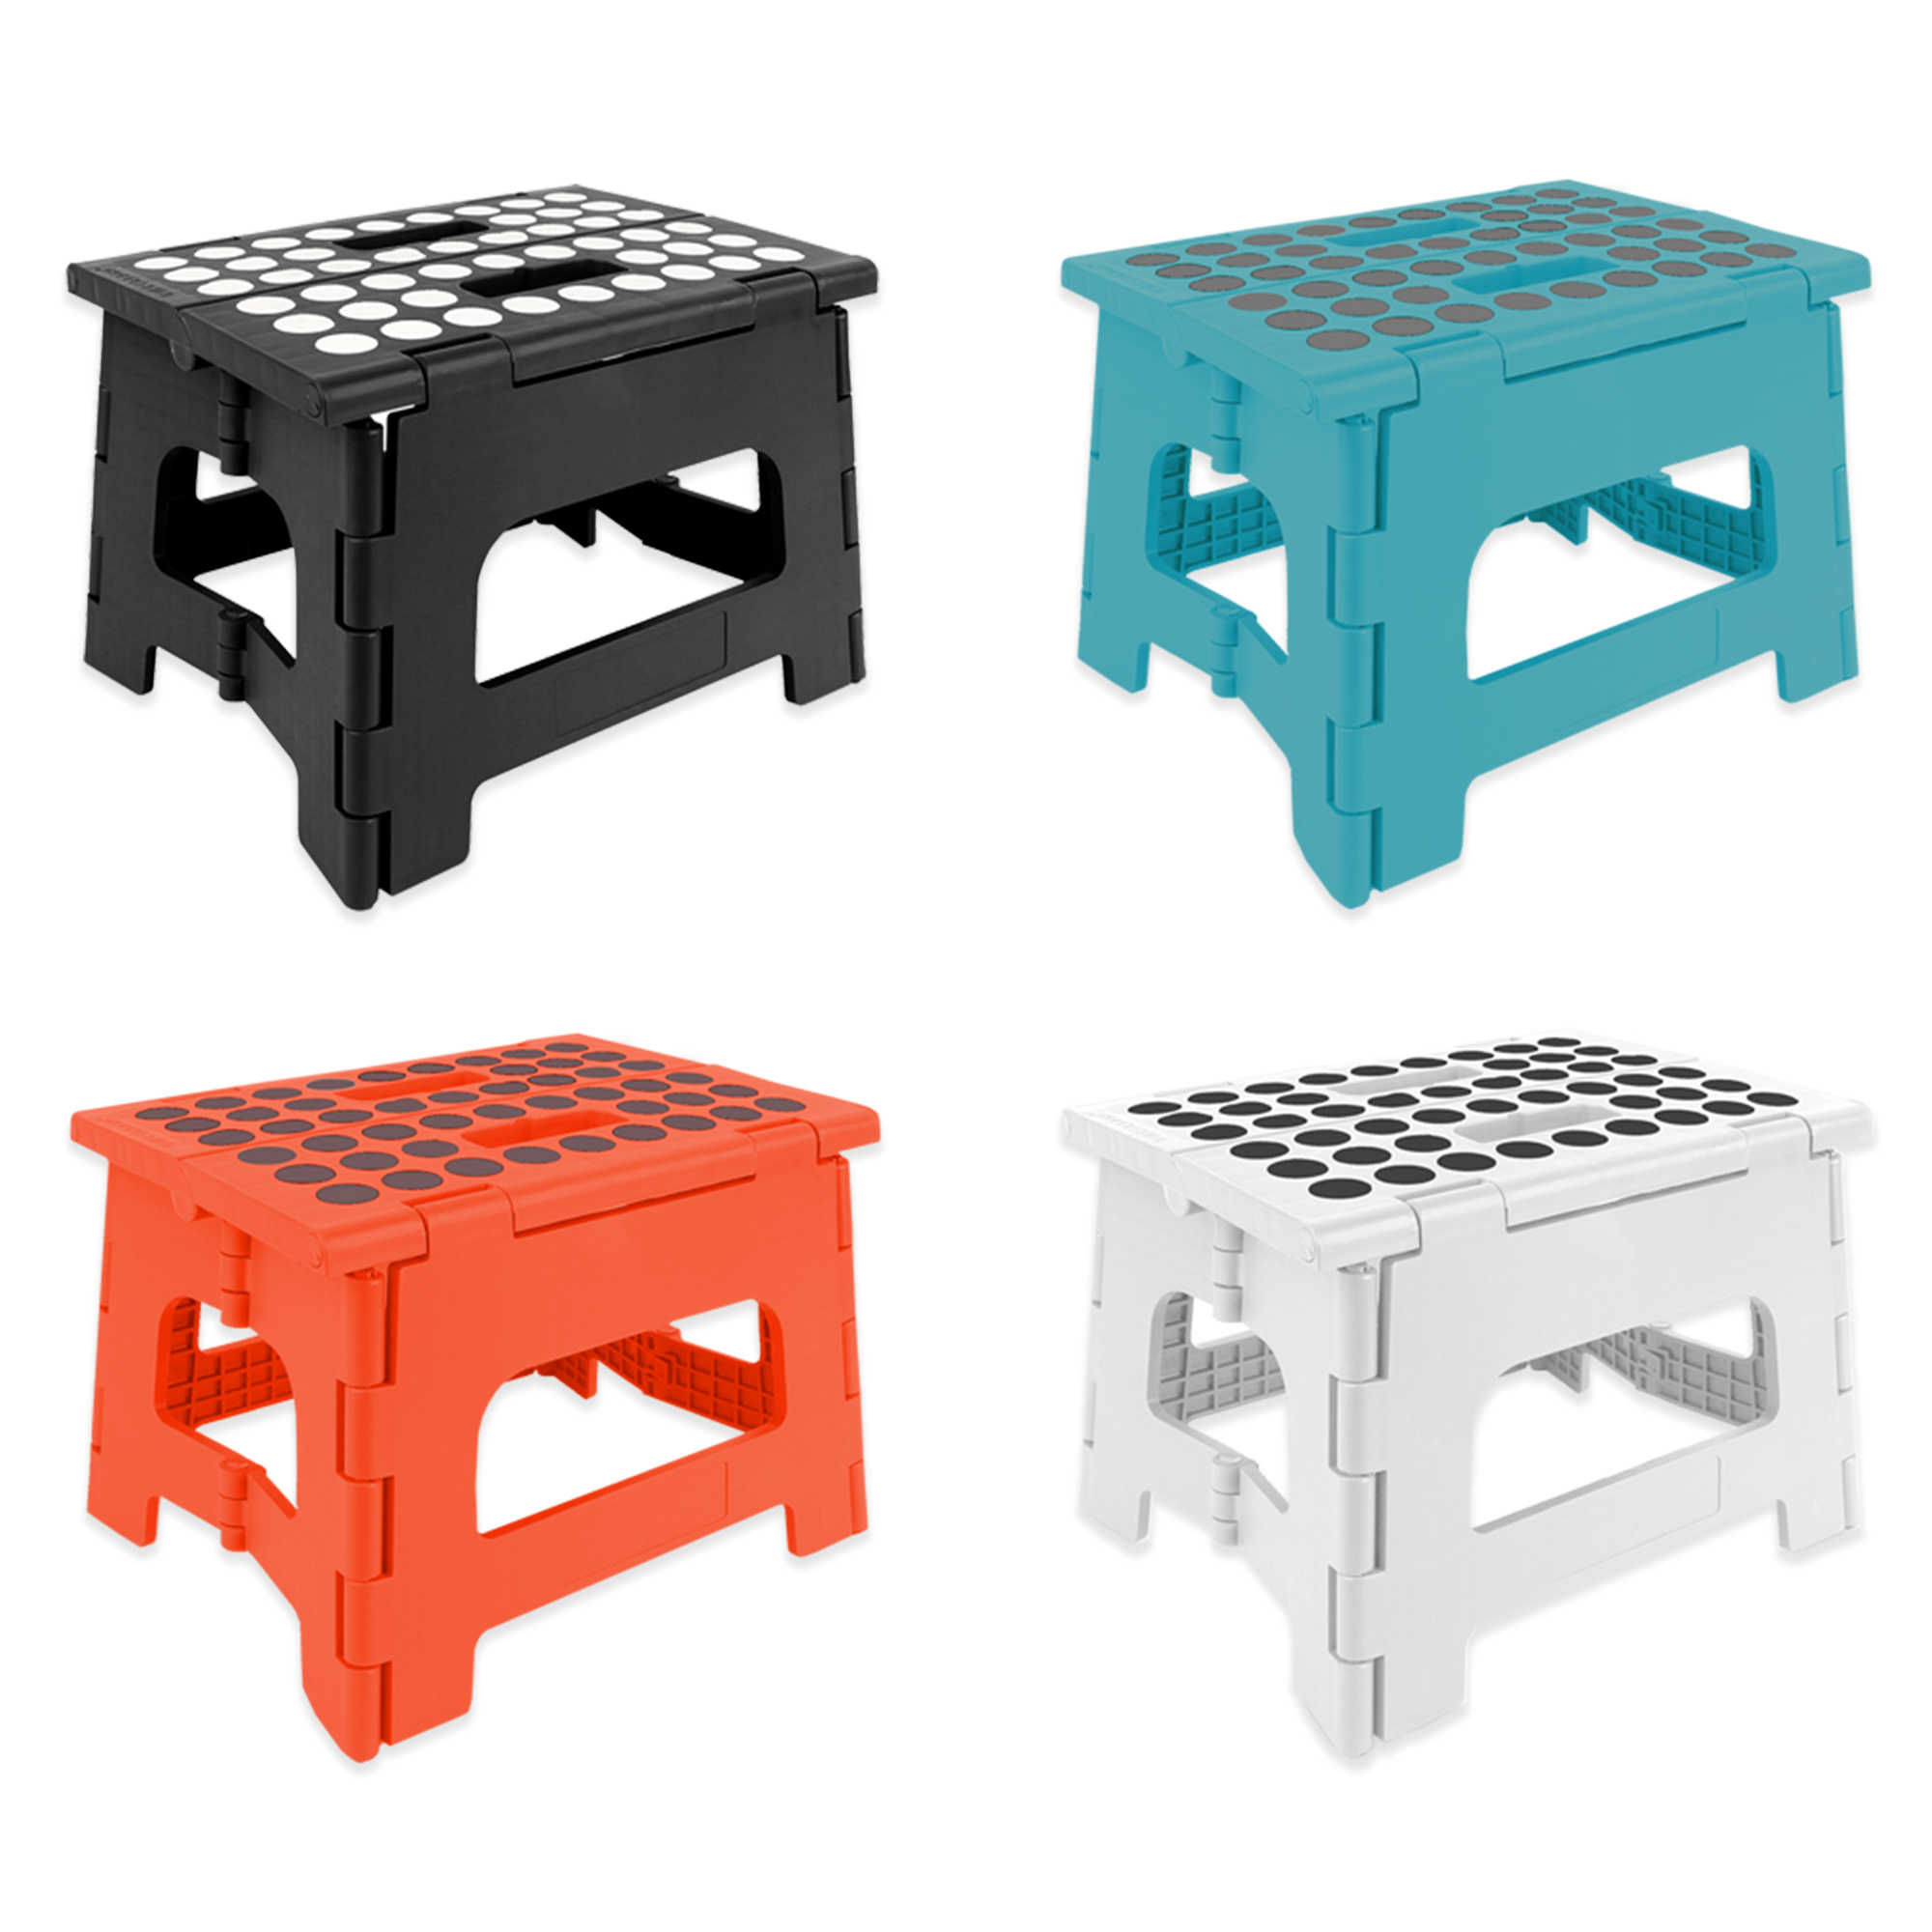 Decorative Step Stools Kitchen Folding Step Stools Step Ladders Bed Bath Beyond